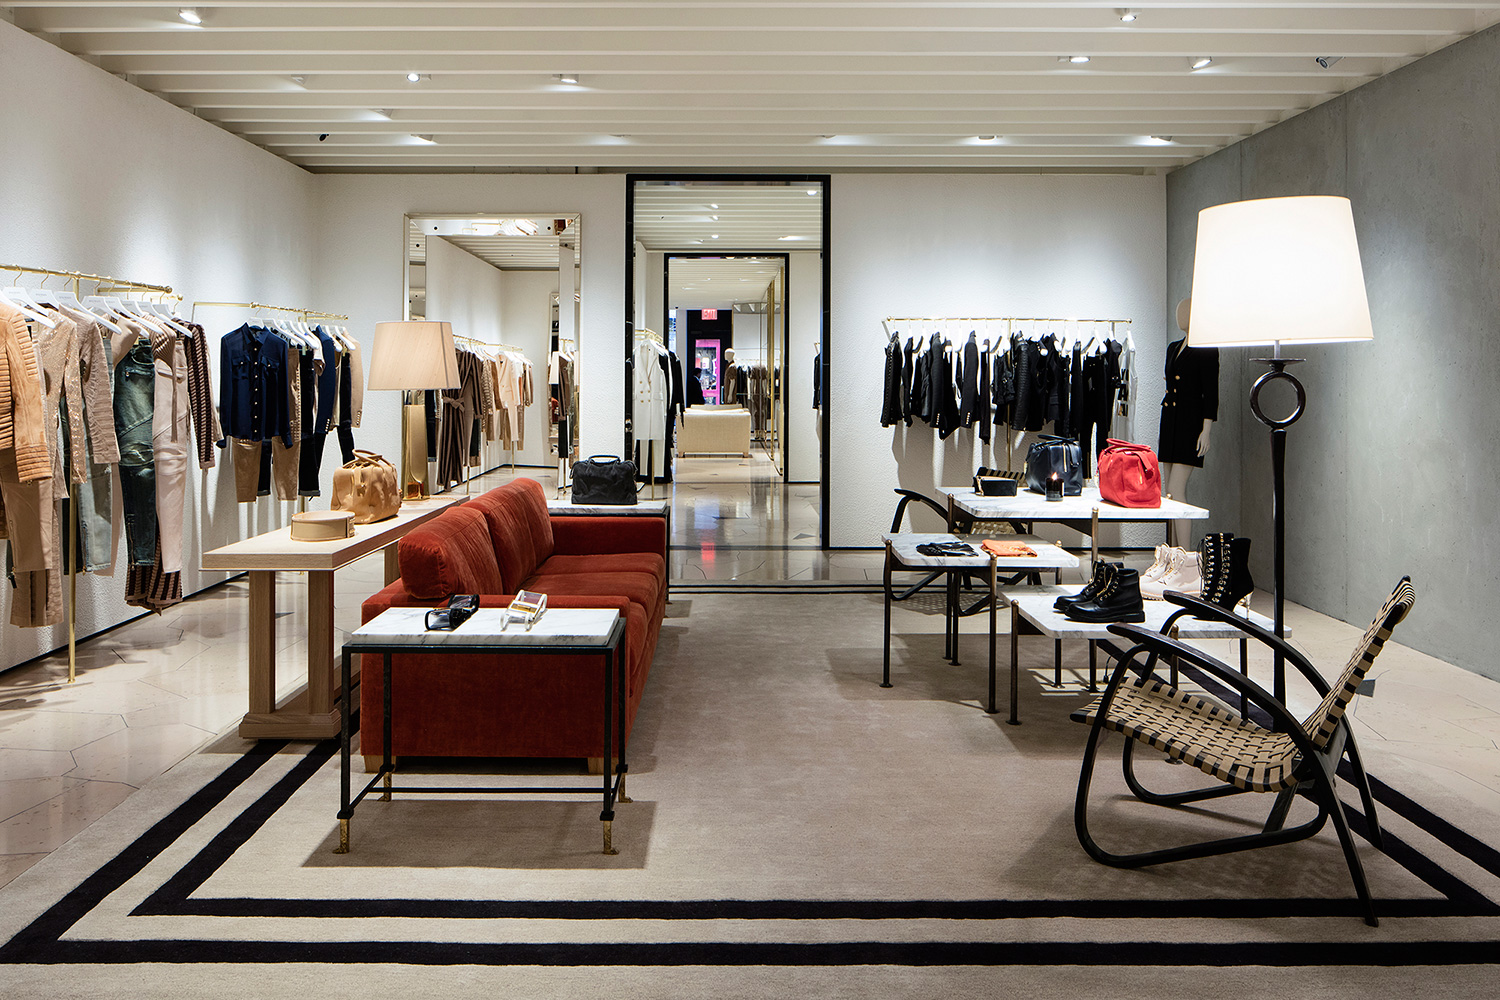 Find blazers, along with jumpsuits, pants and other ready-to-wear items for men and women at the 2,square-foot space.